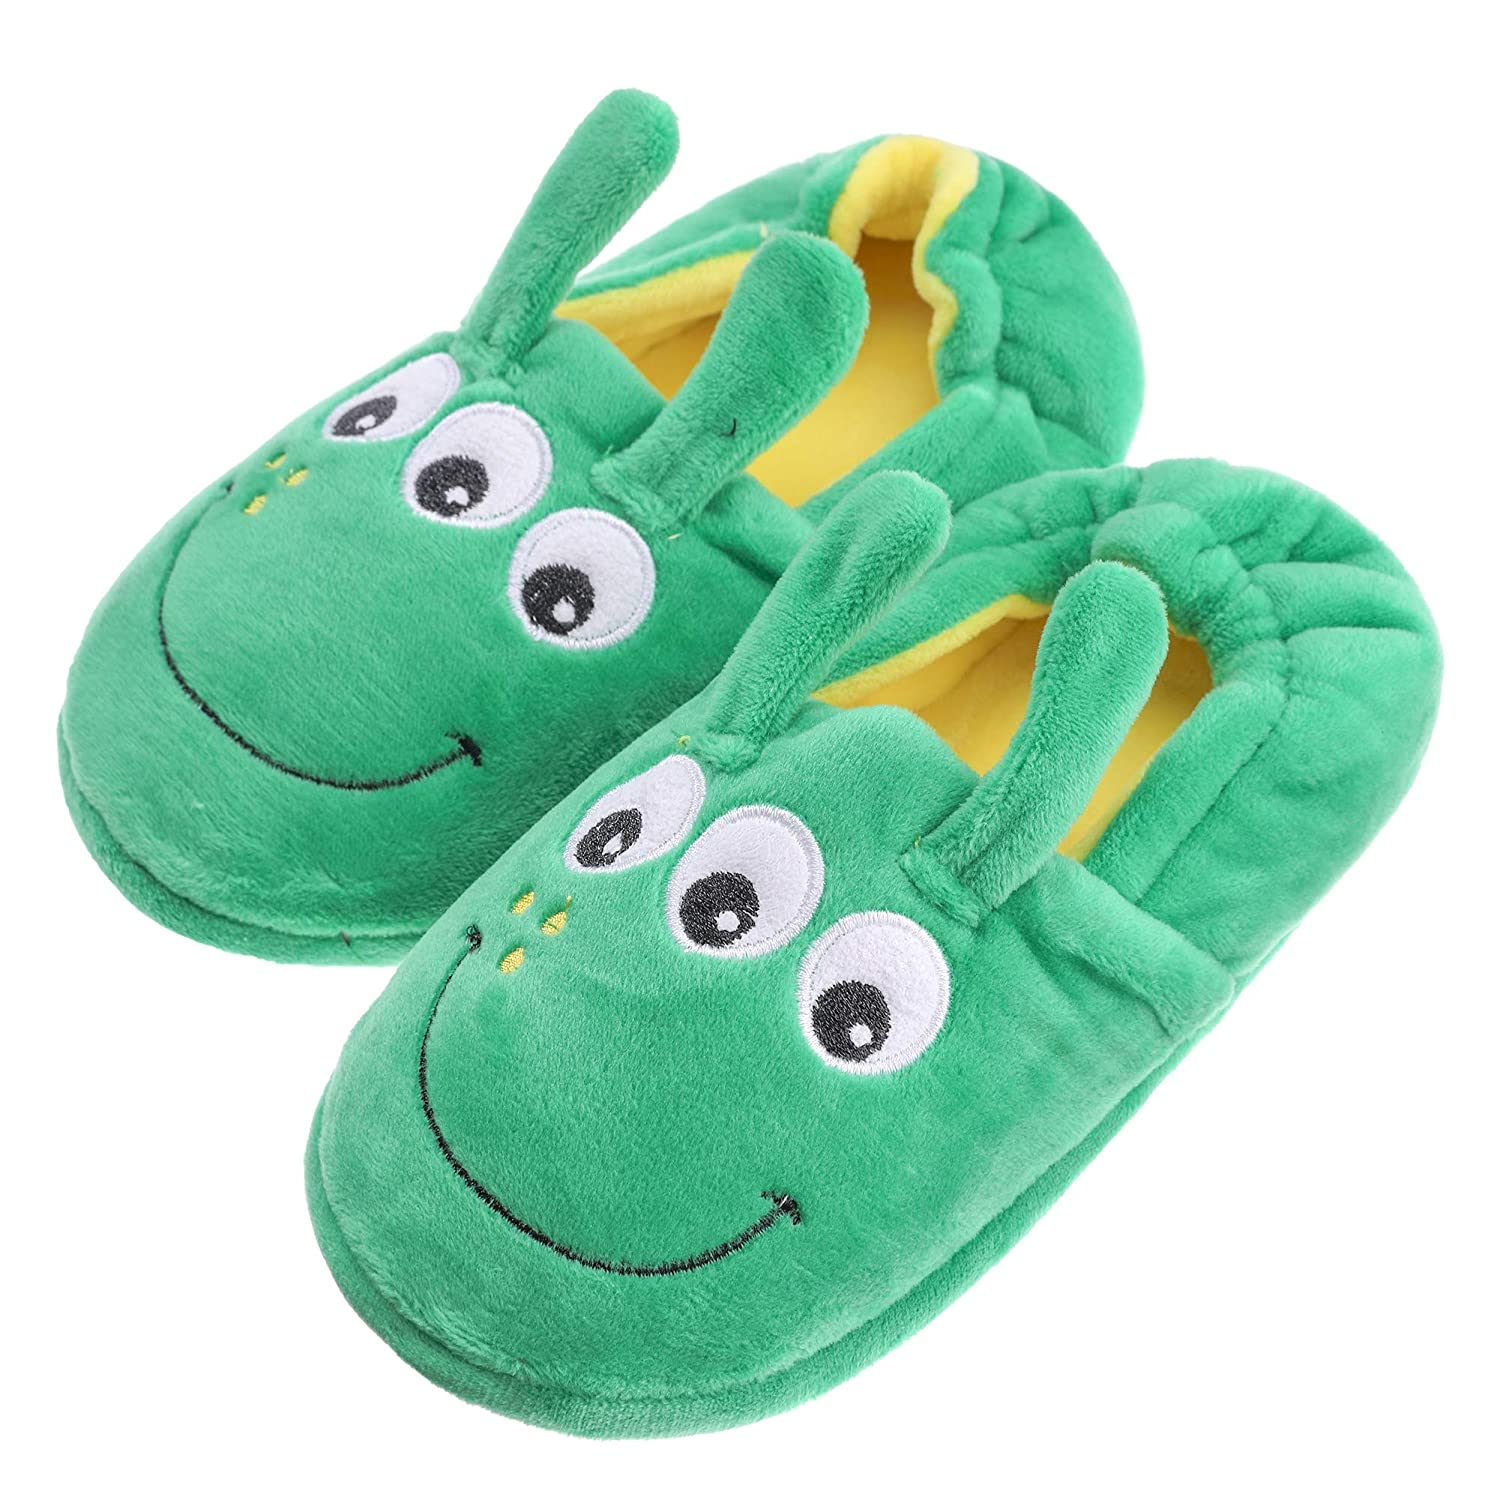 SCOWAY Toddler Baby Boys Girls Cute Cartoon Animal Slippers Soft Warm Plush Anti-Slip Winter Home Shoes